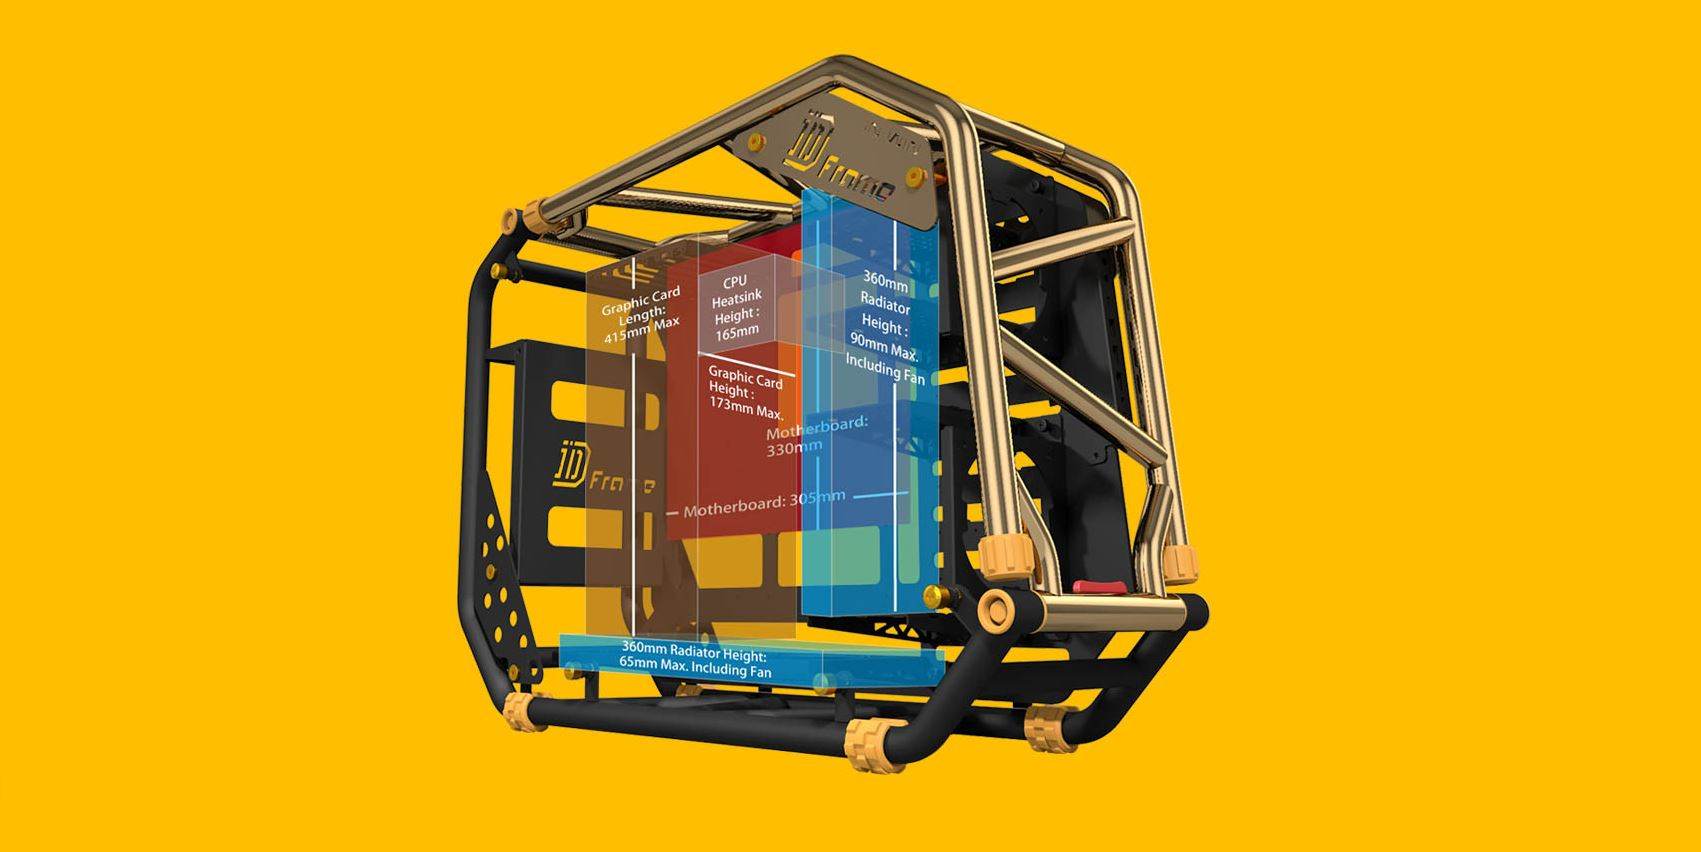 Vỏ Case IN WIN D-Frame 2.0 + SII-1065W - 30th Anniversary Premium Signature Combo Full Tower Đồng thiết kế rộng rãi